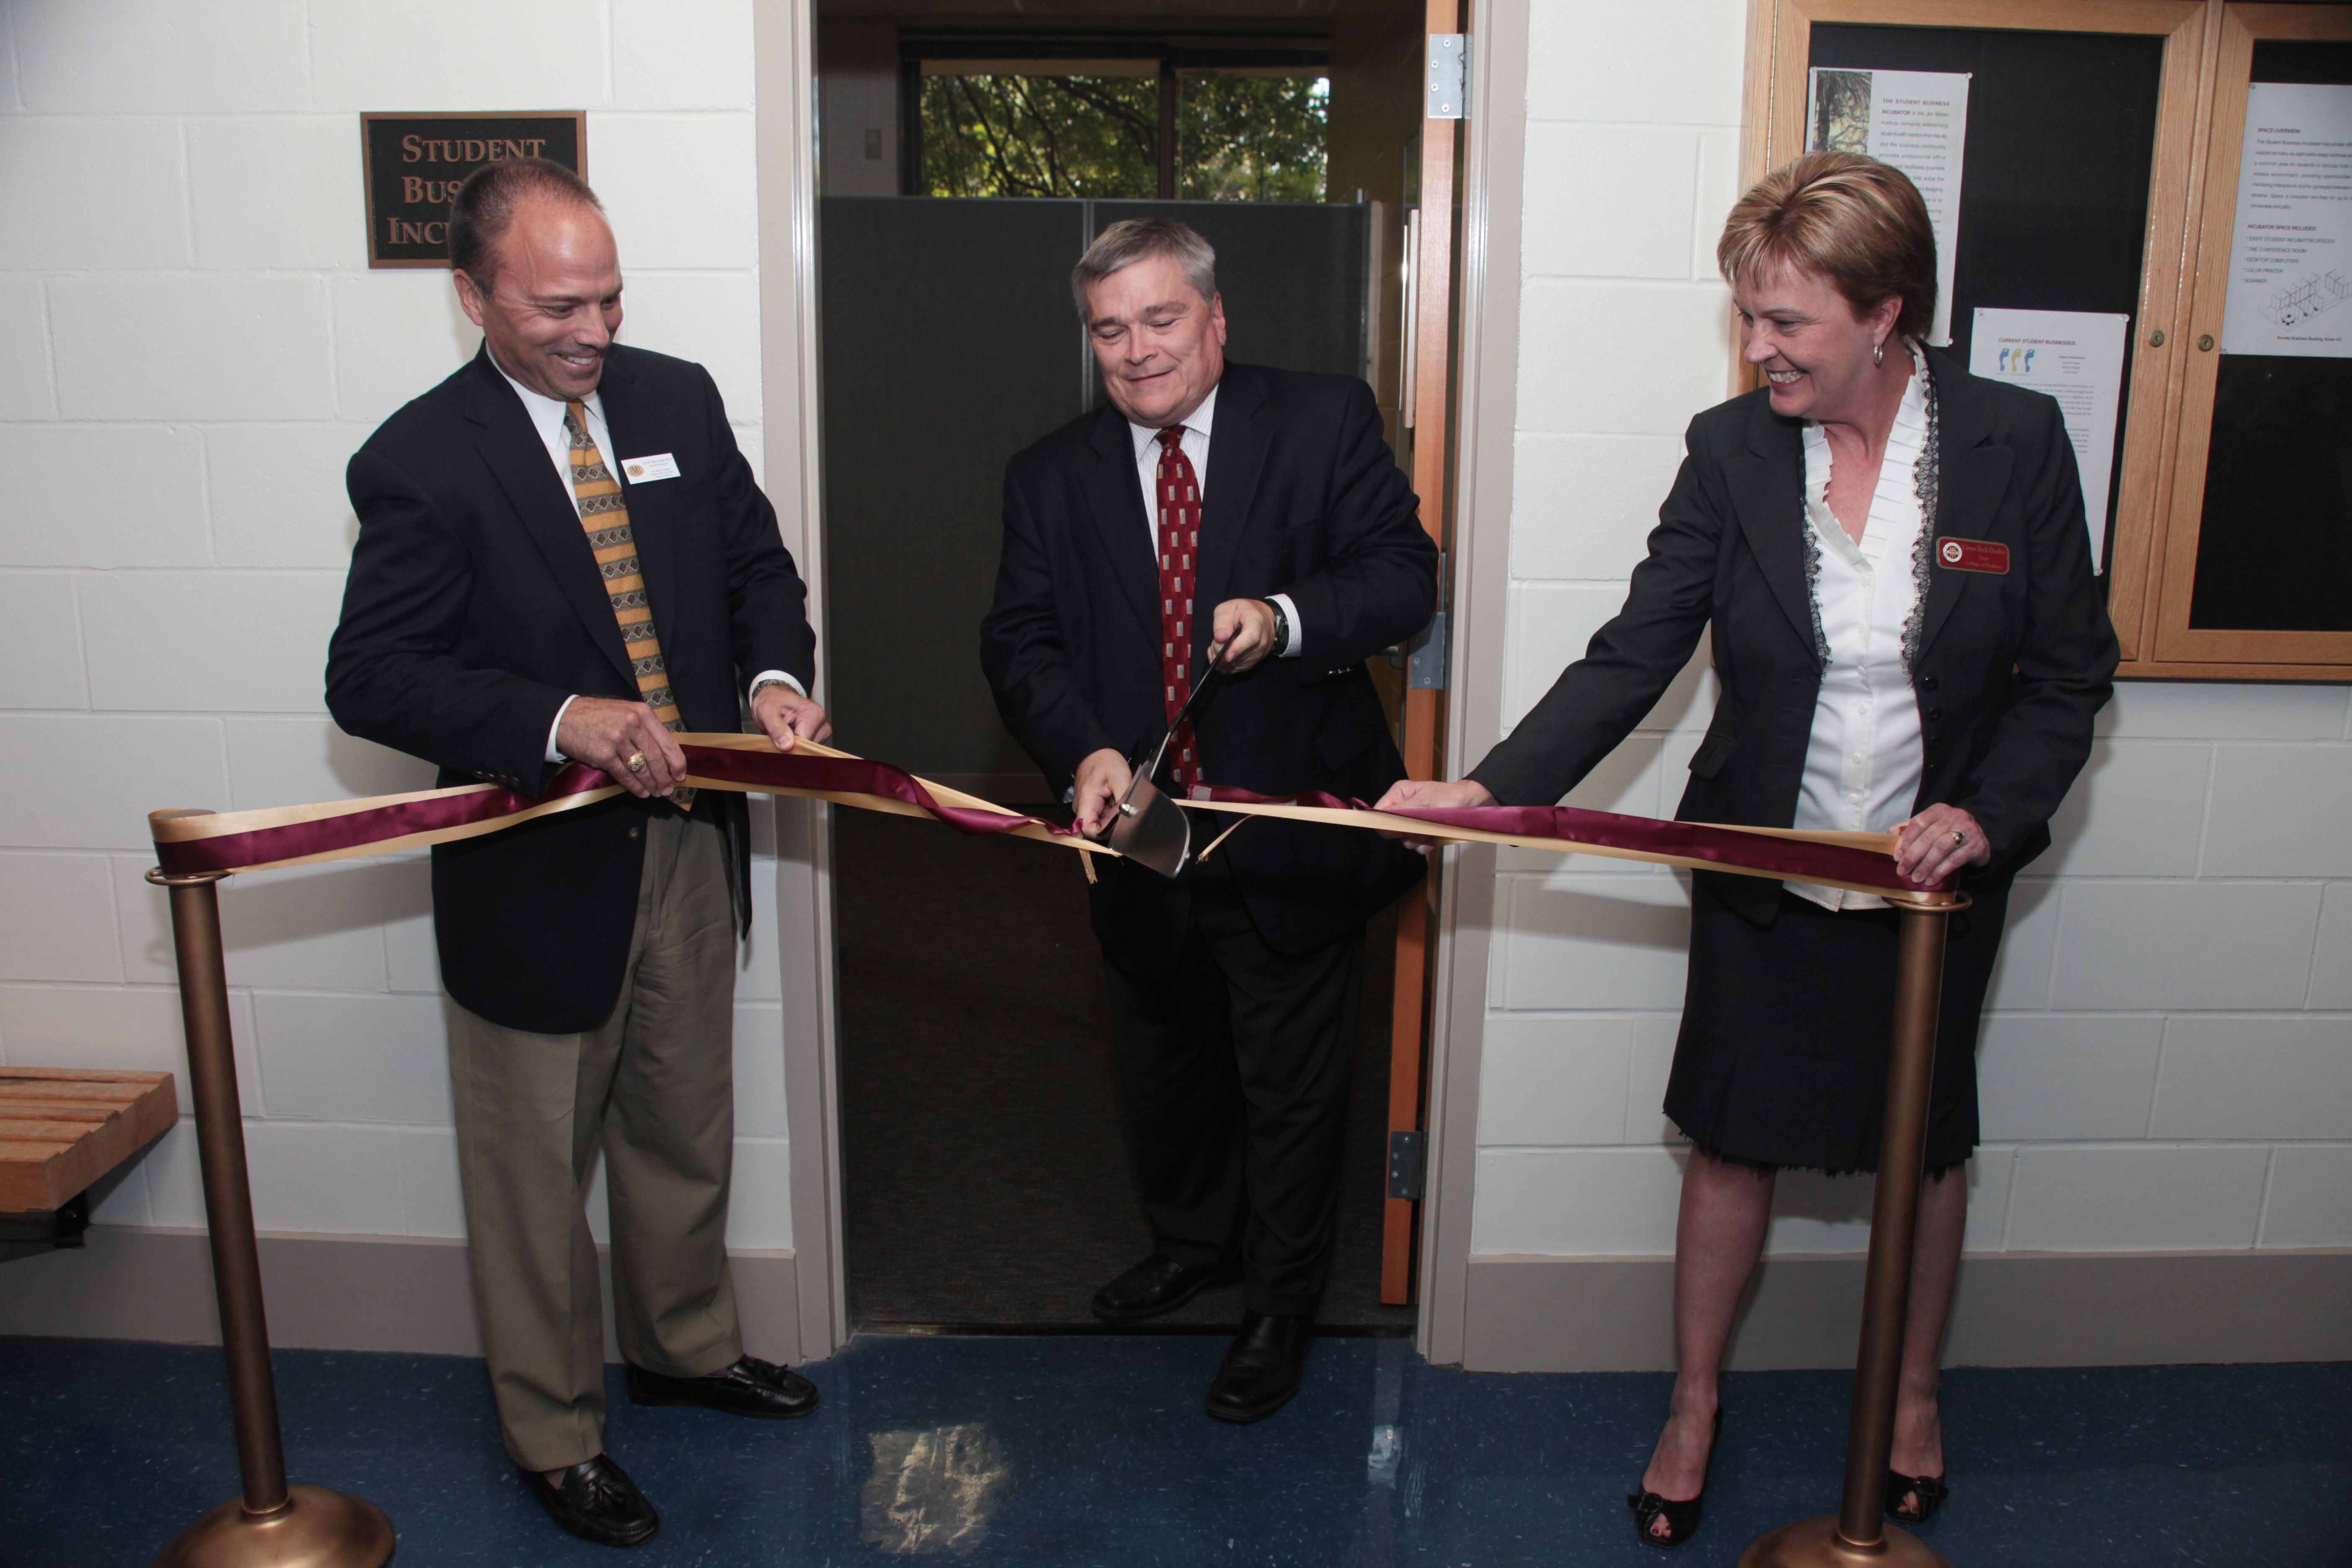 Room 117 on the first floor of the Rovetta Business Building serves as a focal point for undergraduate business start-up activity and provides student entrepreneurs with resources needed during start-up. #Ribboncutting #2010